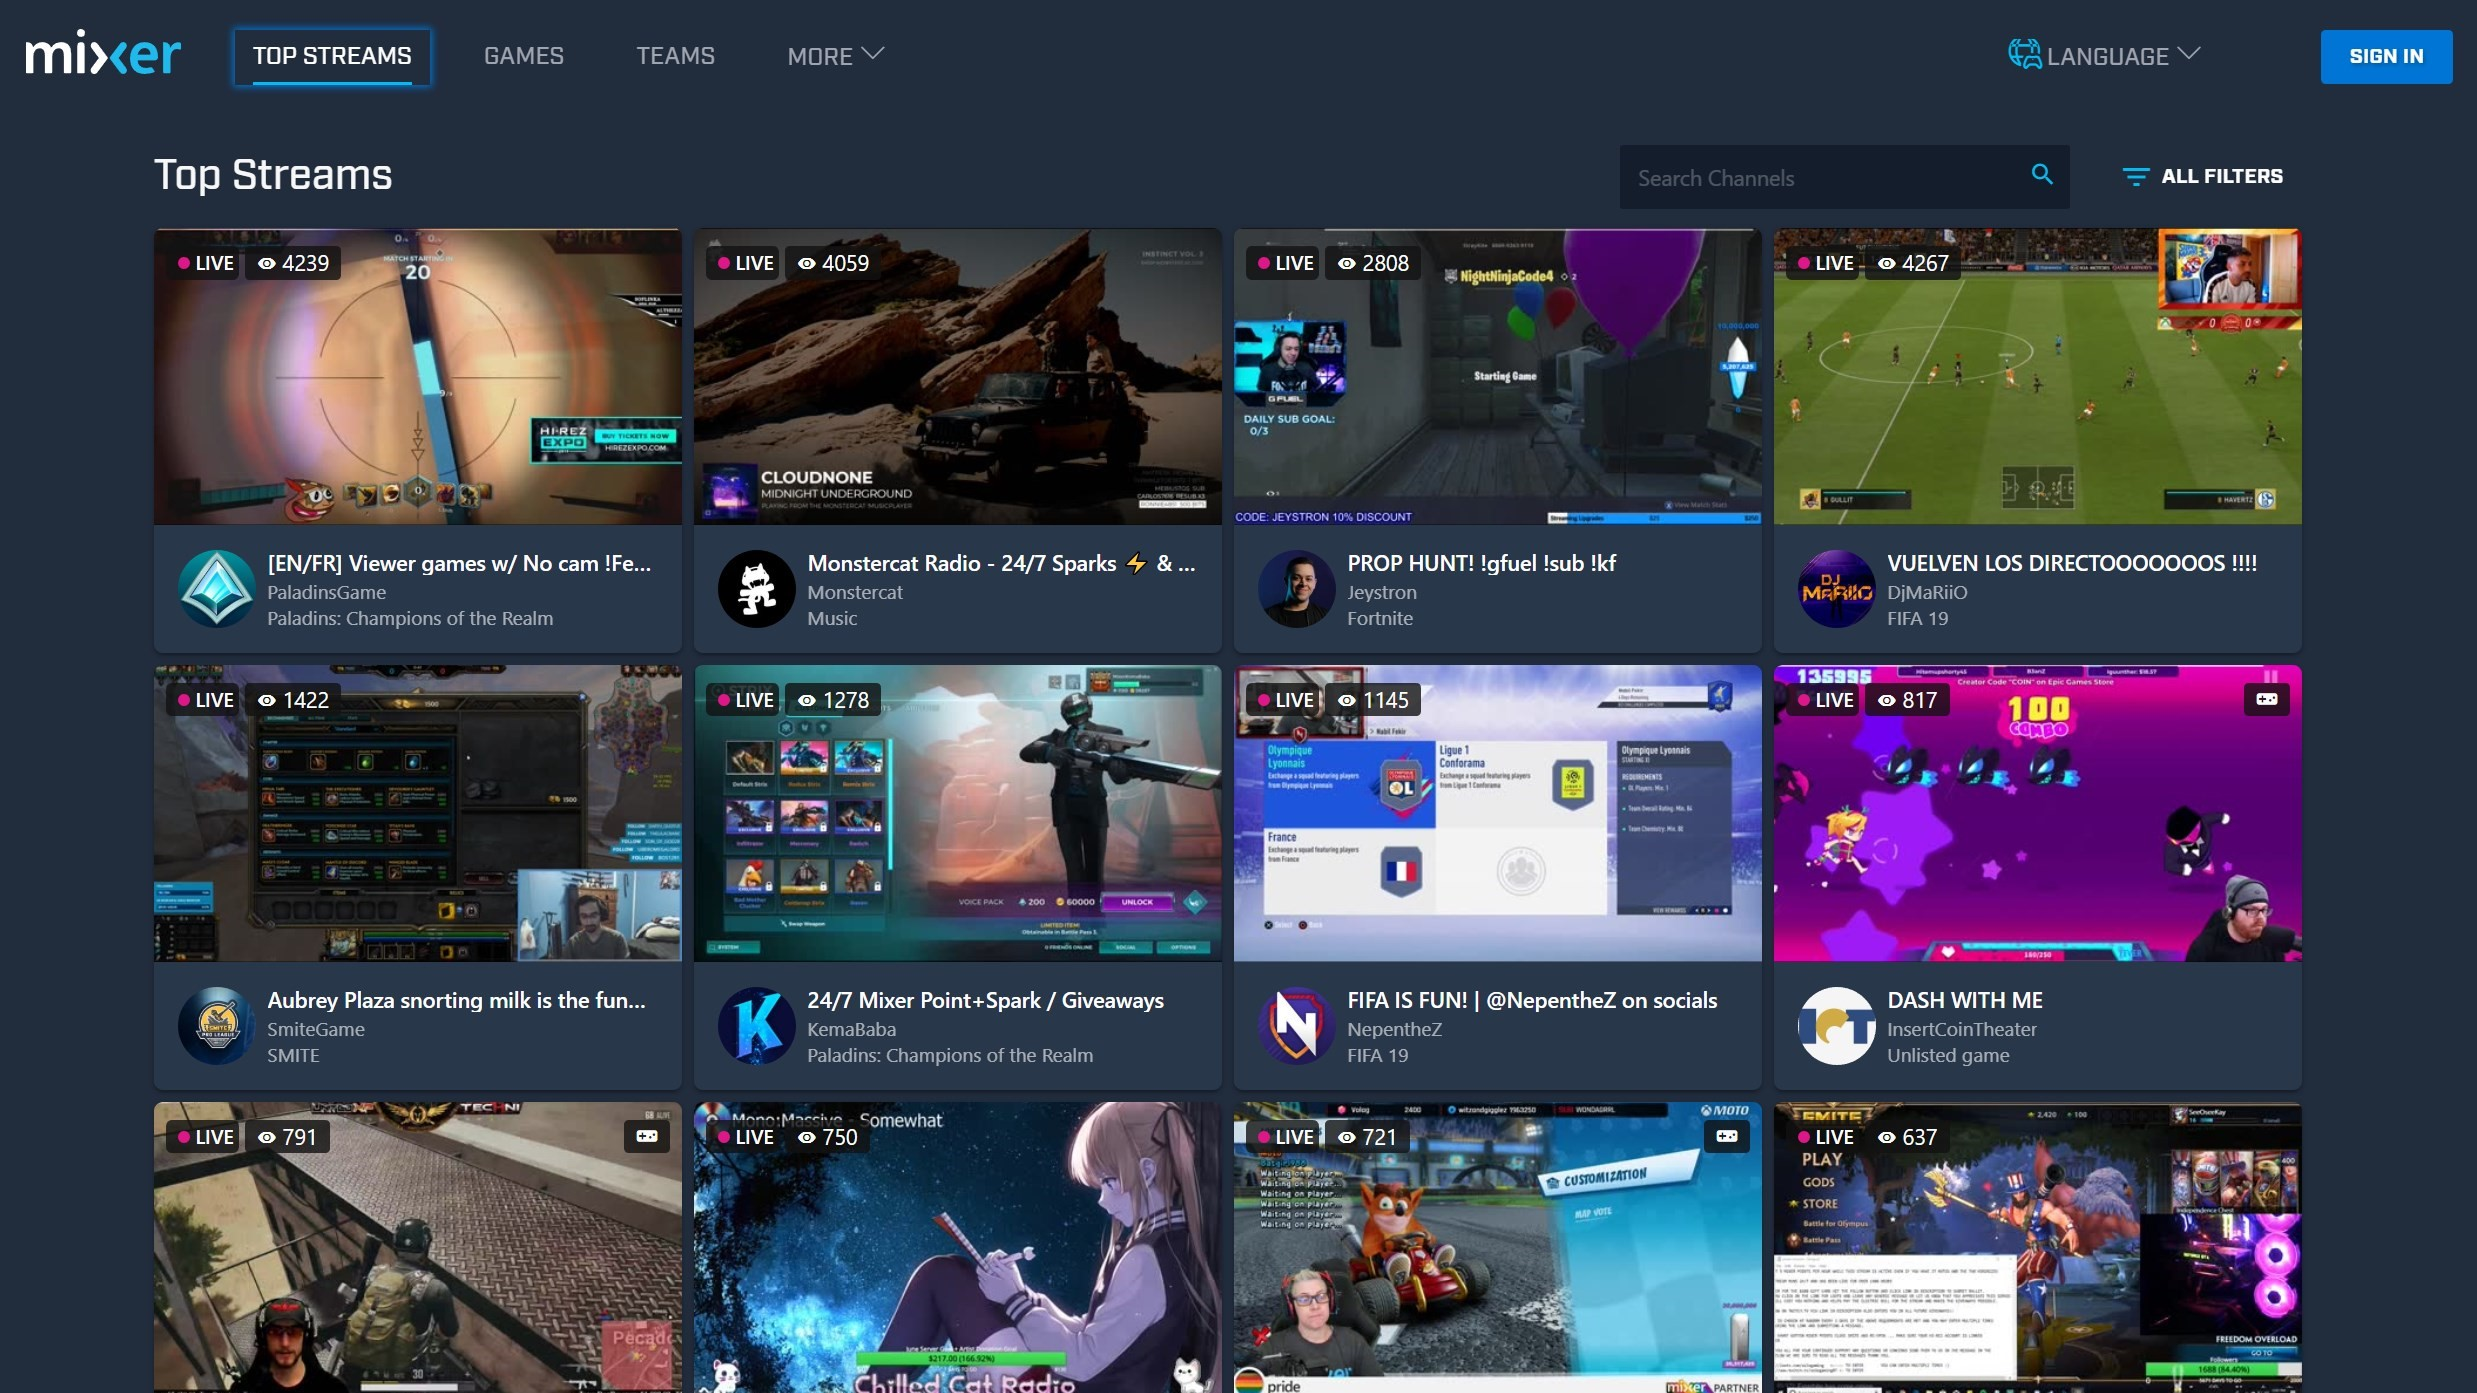 Microsoft Shutting Down Mixer, Merging With Facebook Gaming